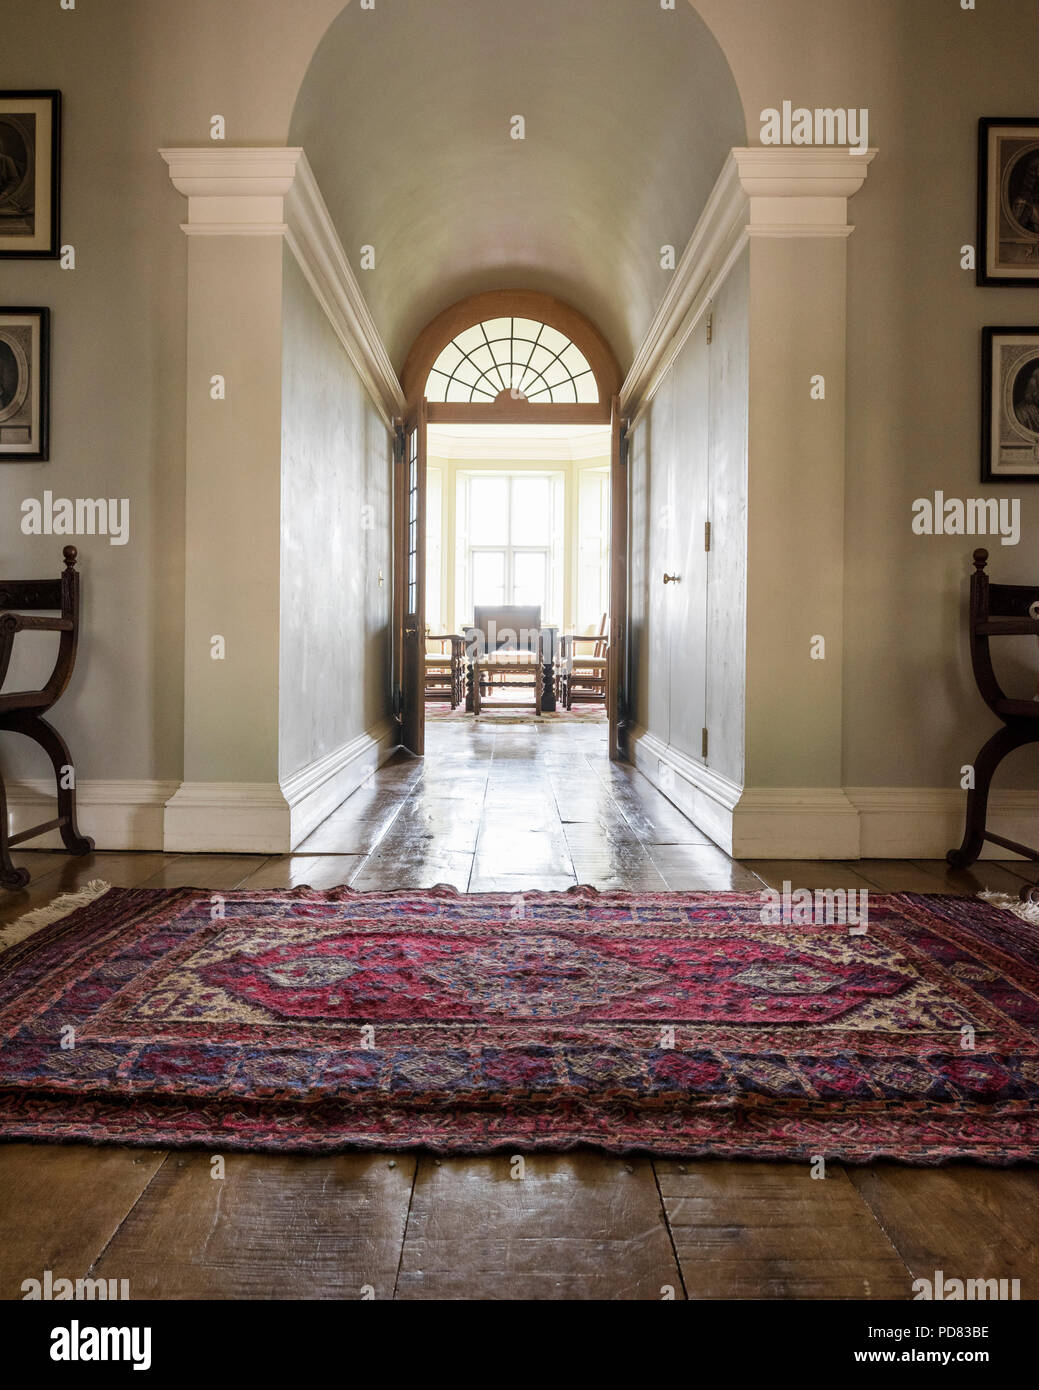 Antique rug in hall leading through to dining room with double doors Stock Photo